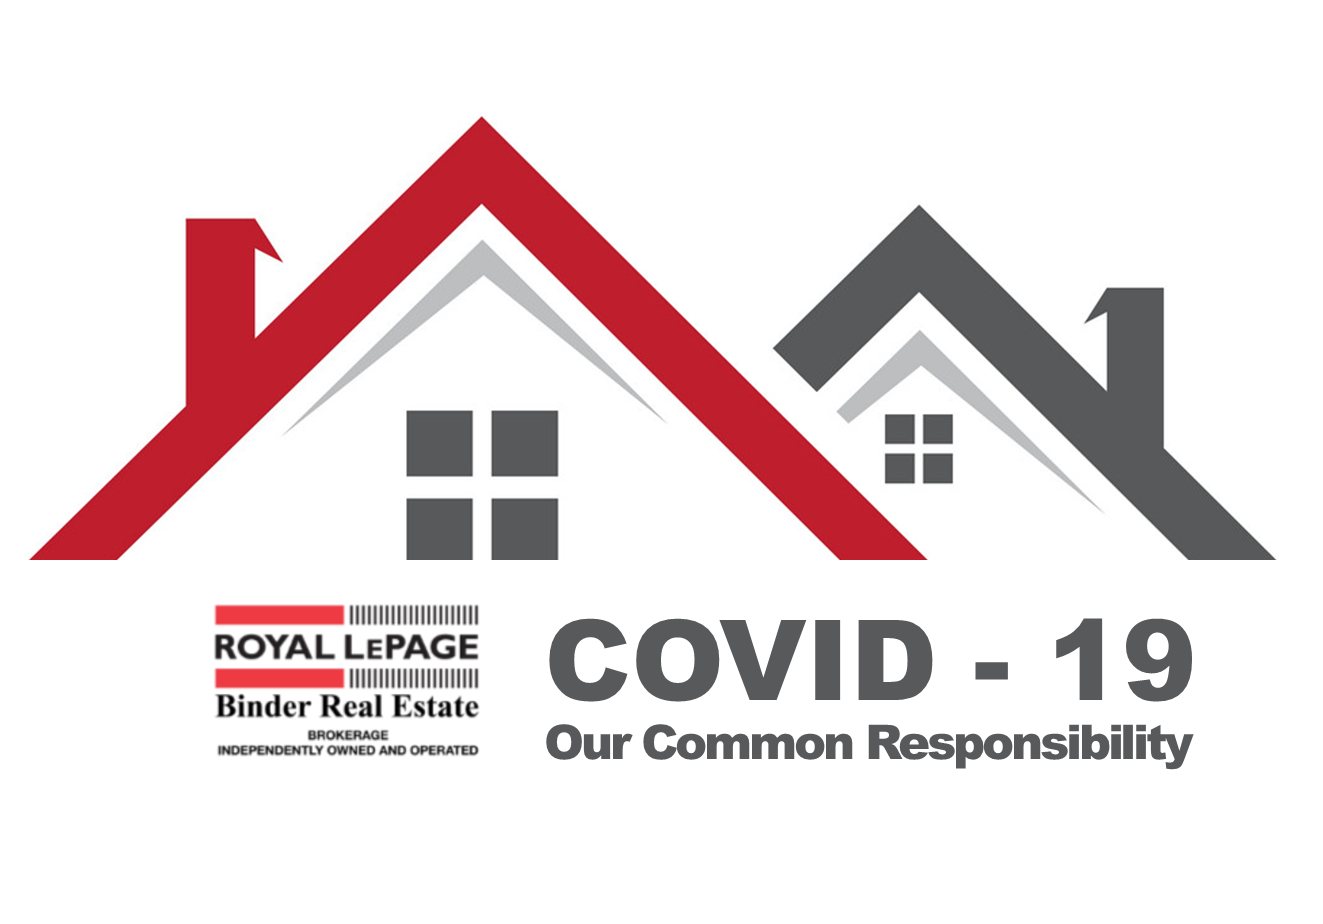 COVID-19: Our Common Responsibility